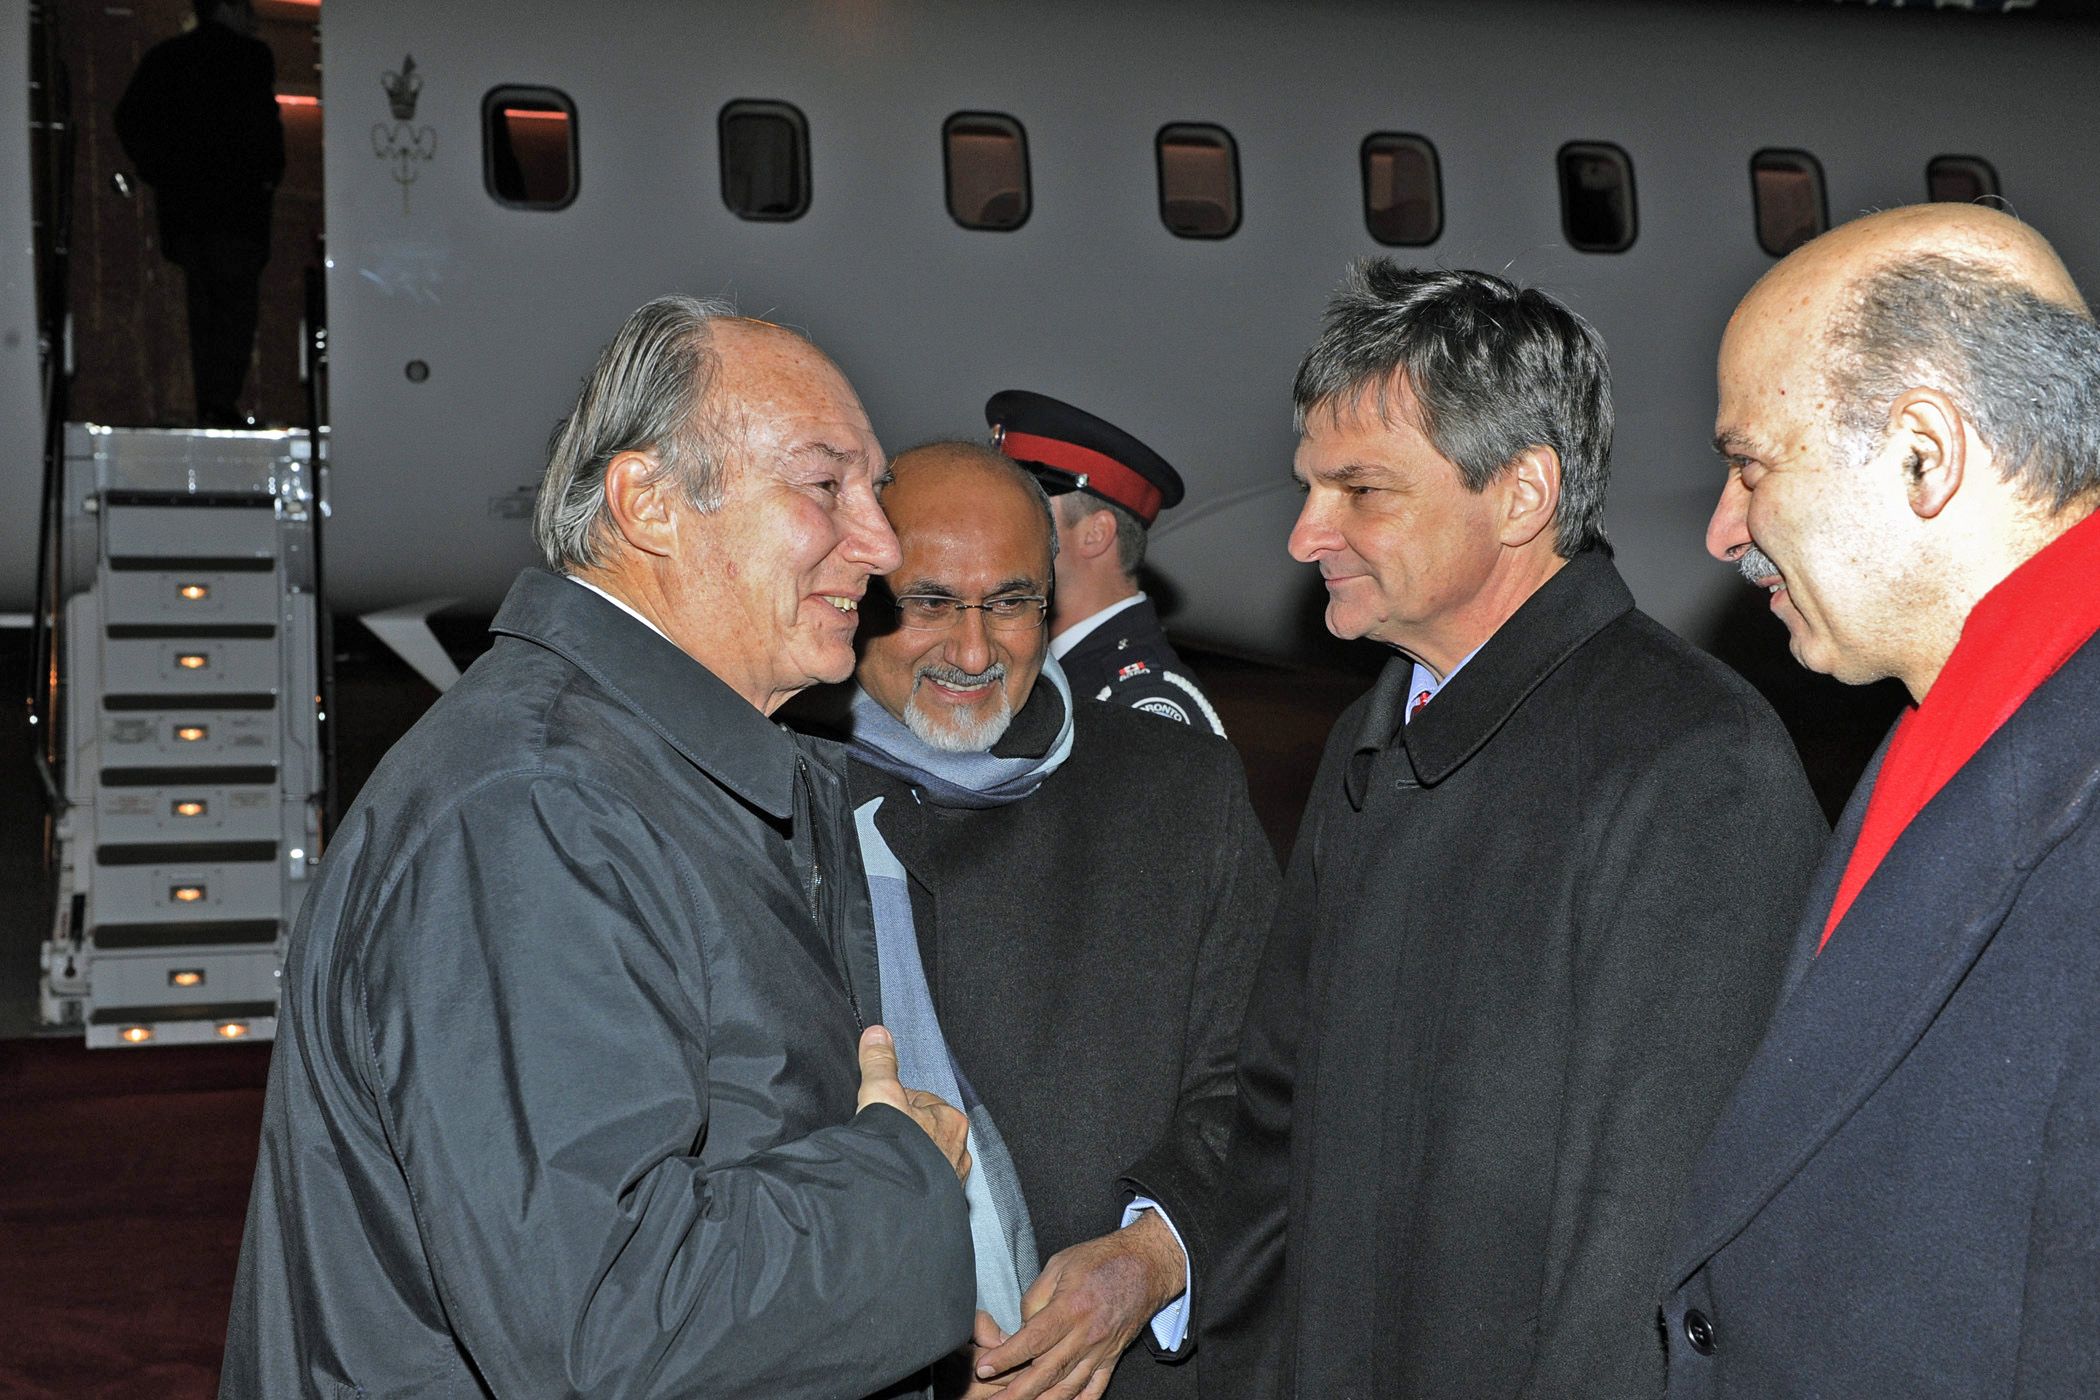 Attorney General Chris Bentley and MPP Reza Moridi welcome Mawlana Hazar Imam to Toronto. Photo: Gary Otte